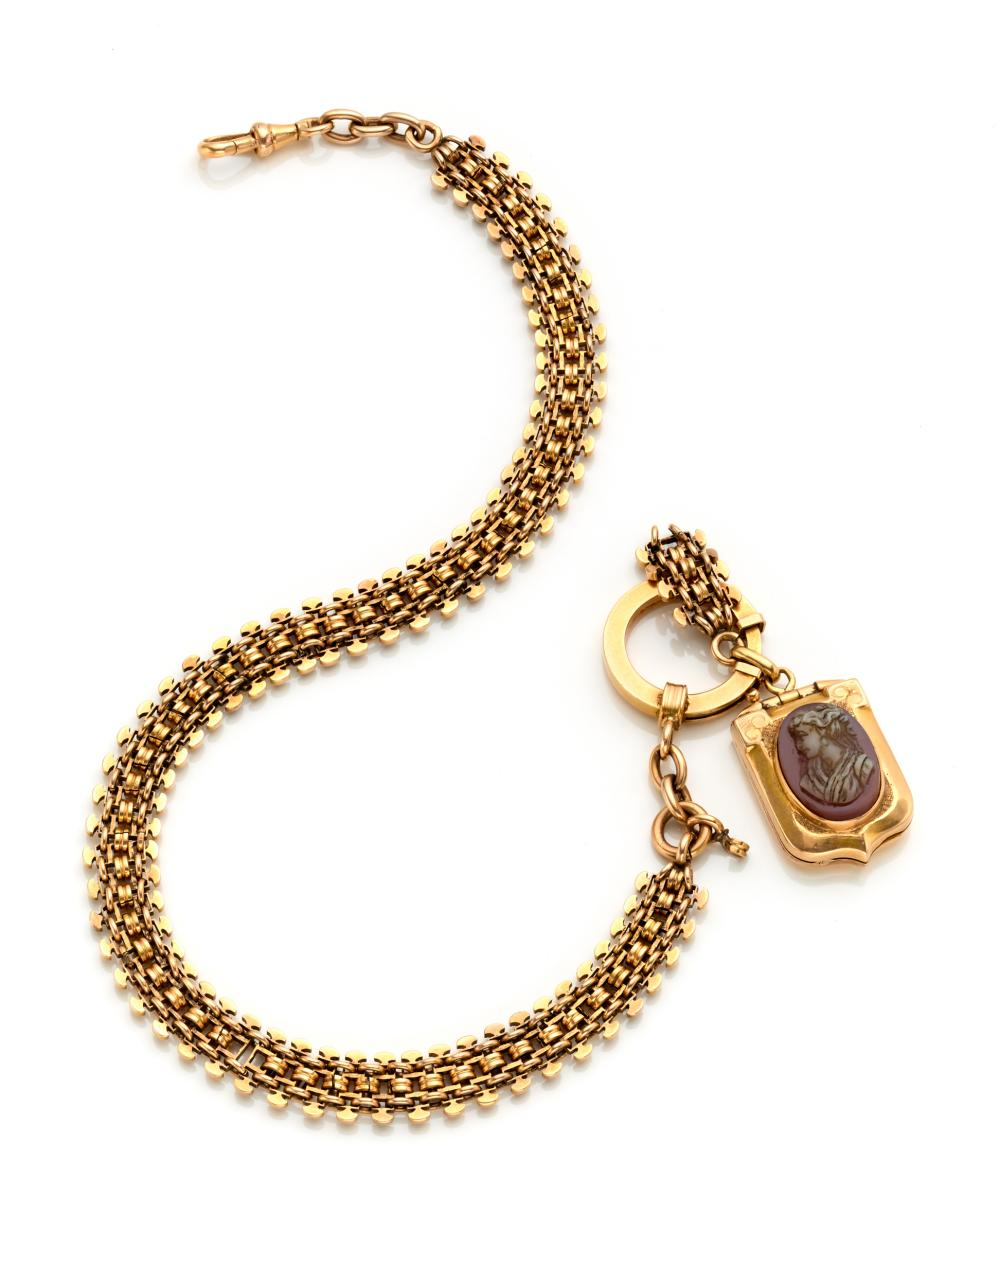 Yellow gold watch chain finished with a carnelian cameo pendant/locket of cm 4.6 circa, g 47.65 circa, length cm 34 circa. (defects and losses)...